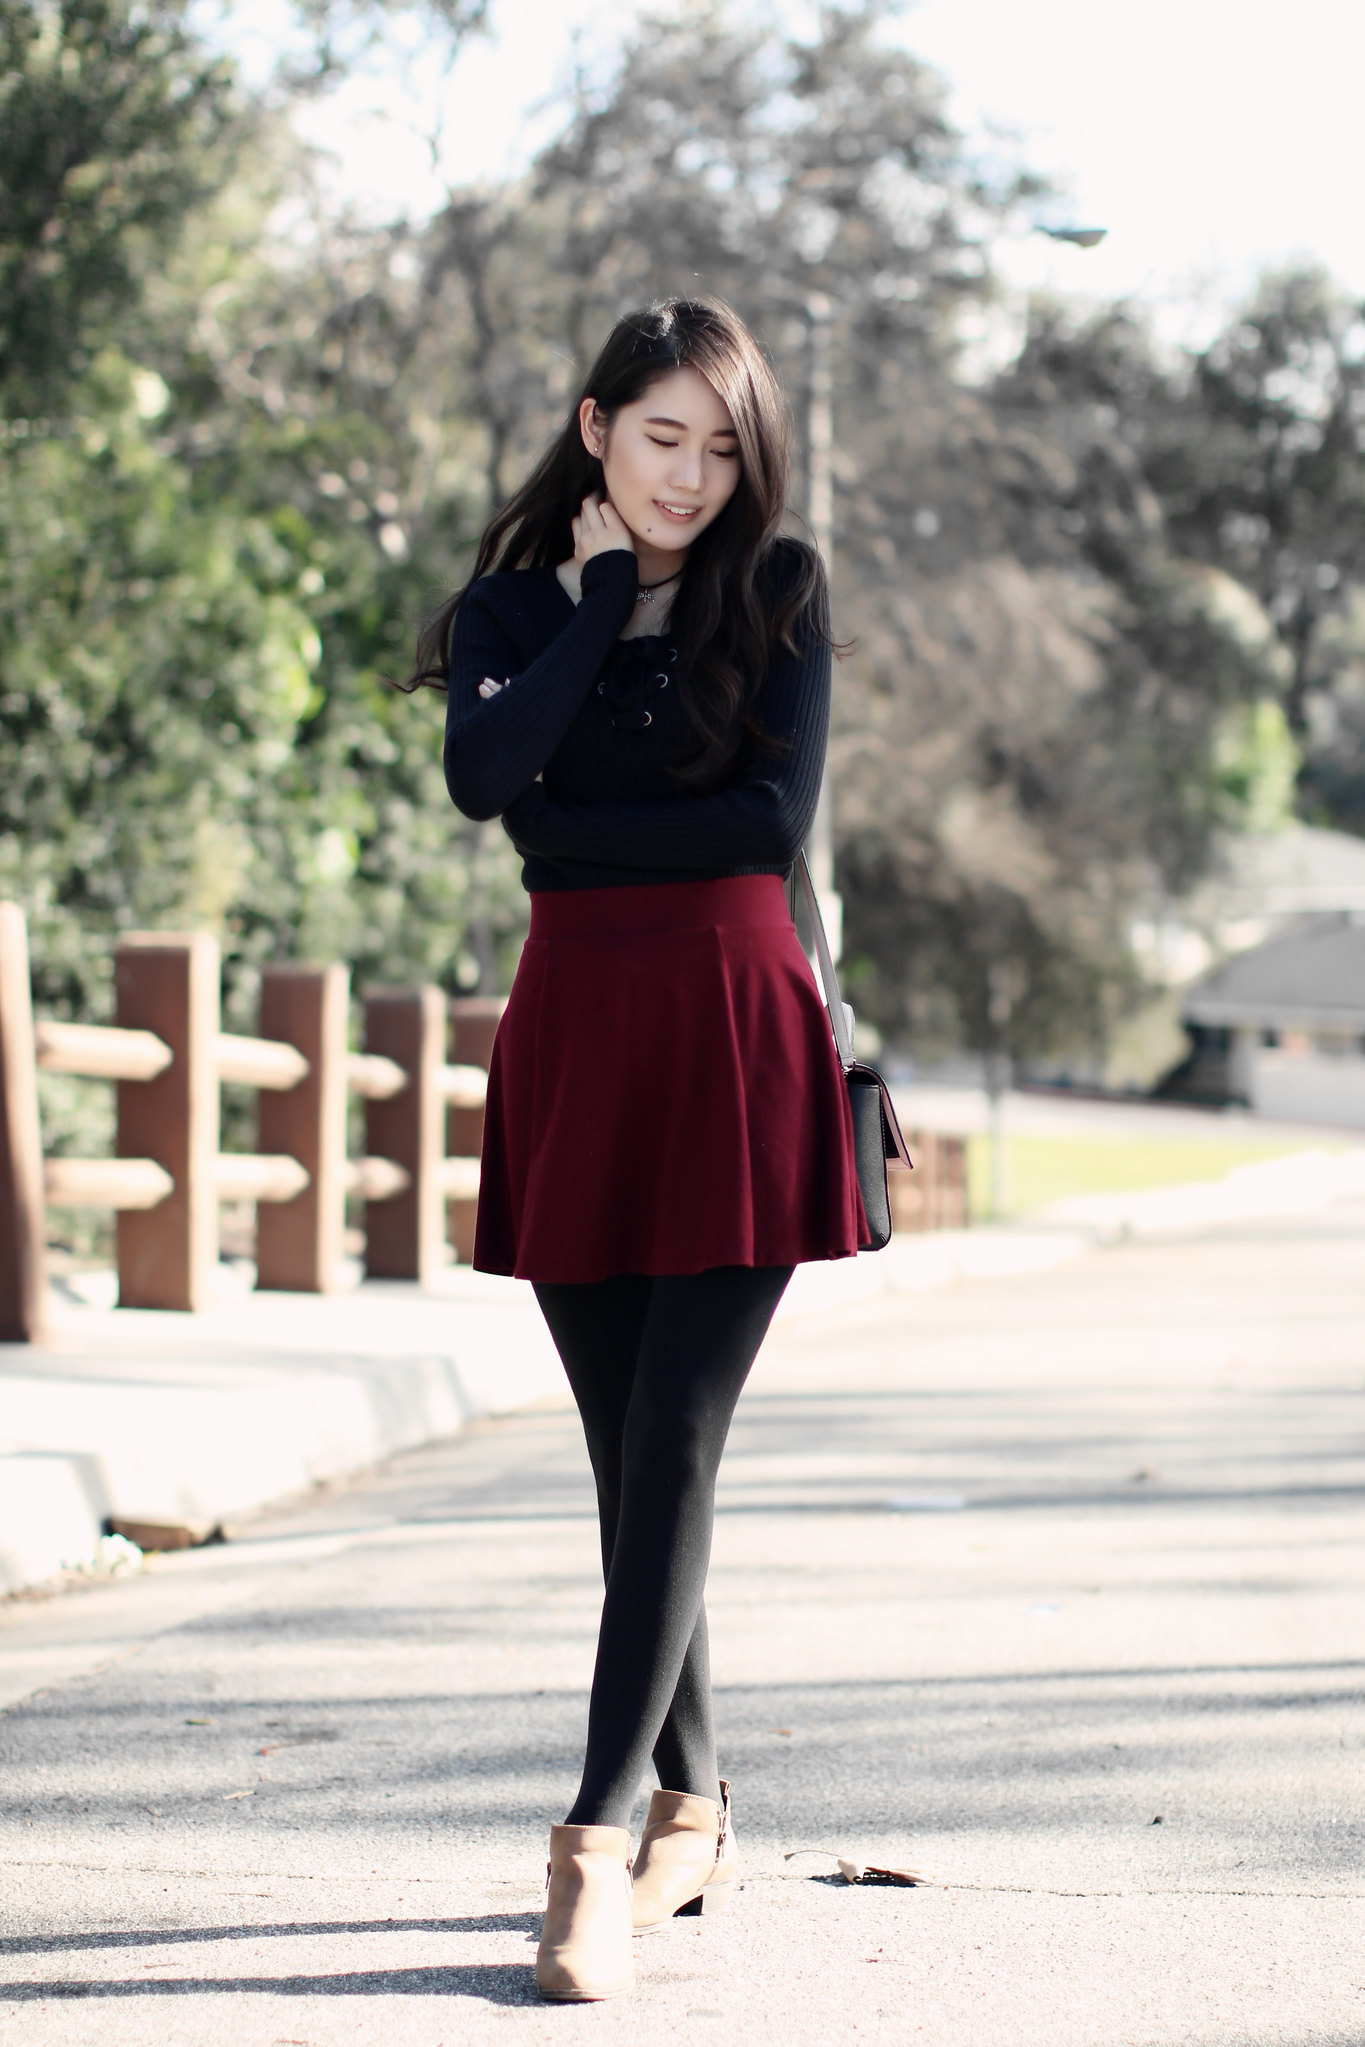 2379-ootd-fashion-style-wiwt-clothestoyouuu-elizabeeetht-preppy-f21-hollister-winterfashion-springfashion